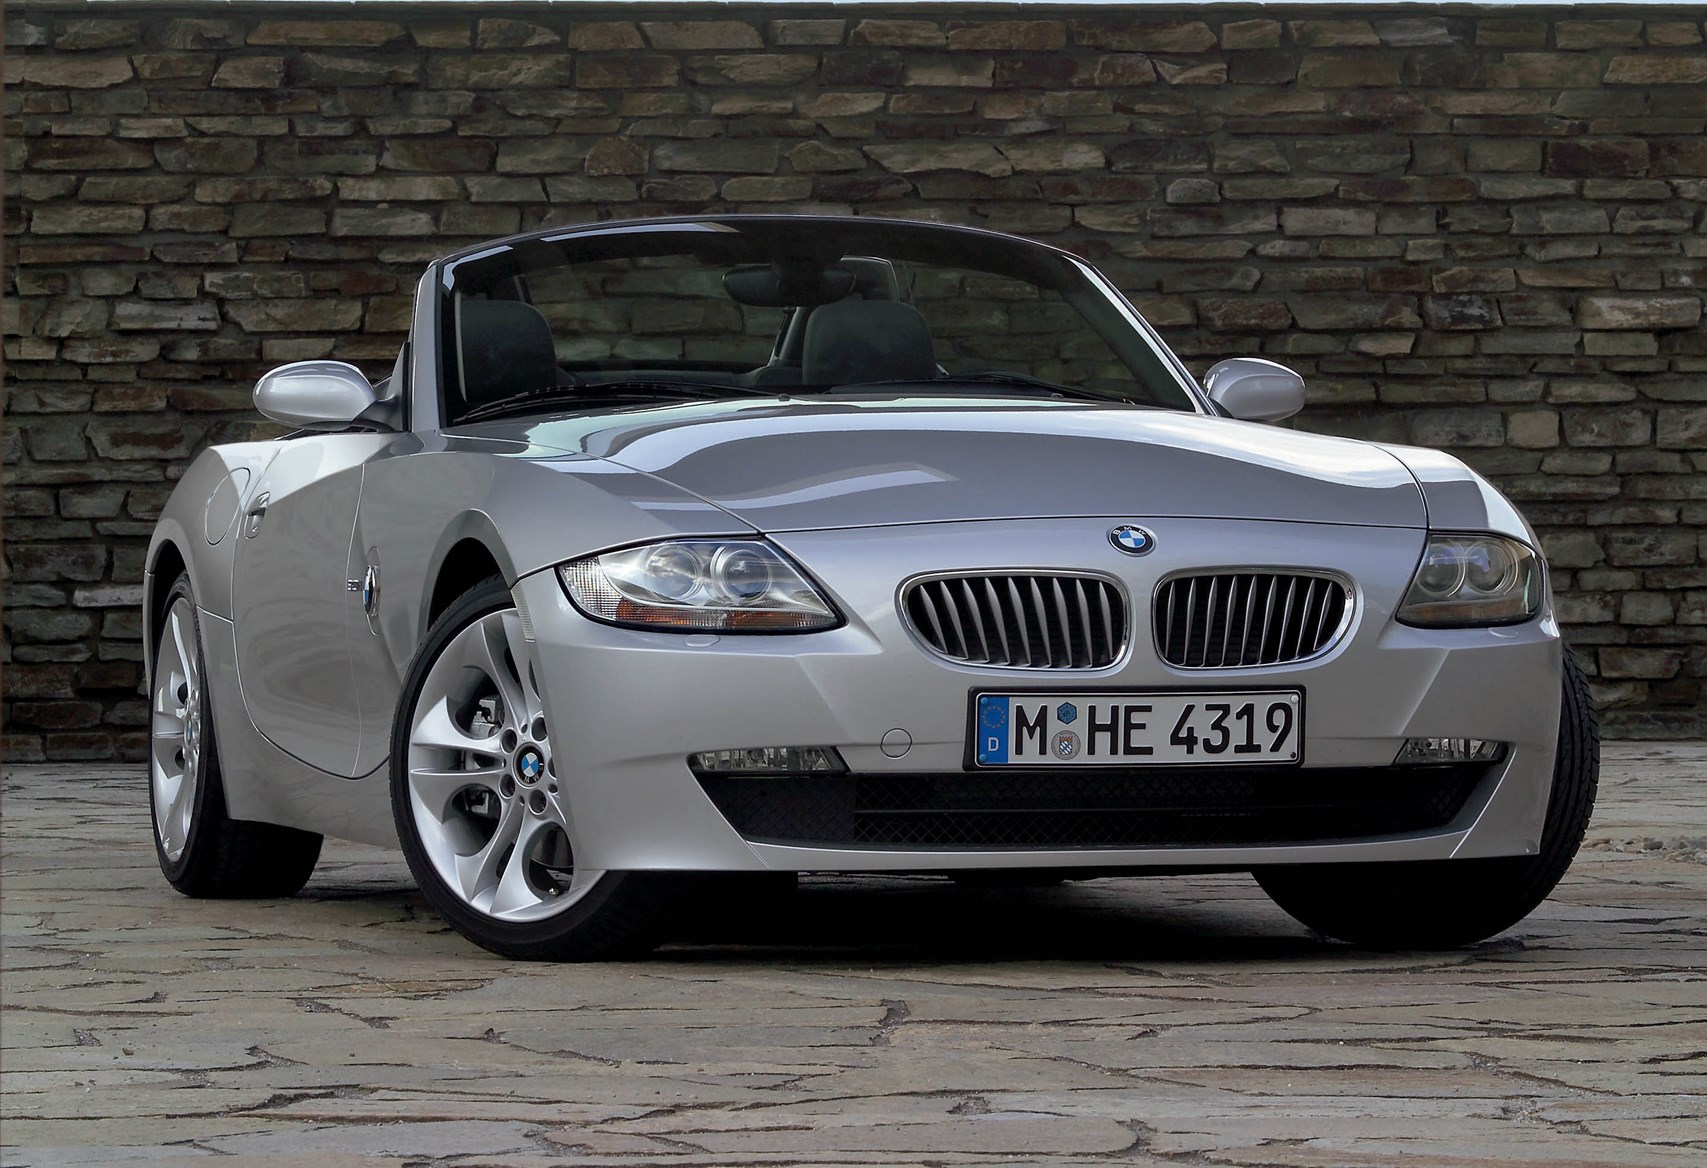 Bmw Used For Sale >> BMW Z4 Roadster (2003 - 2008) Driving & Performance | Parkers